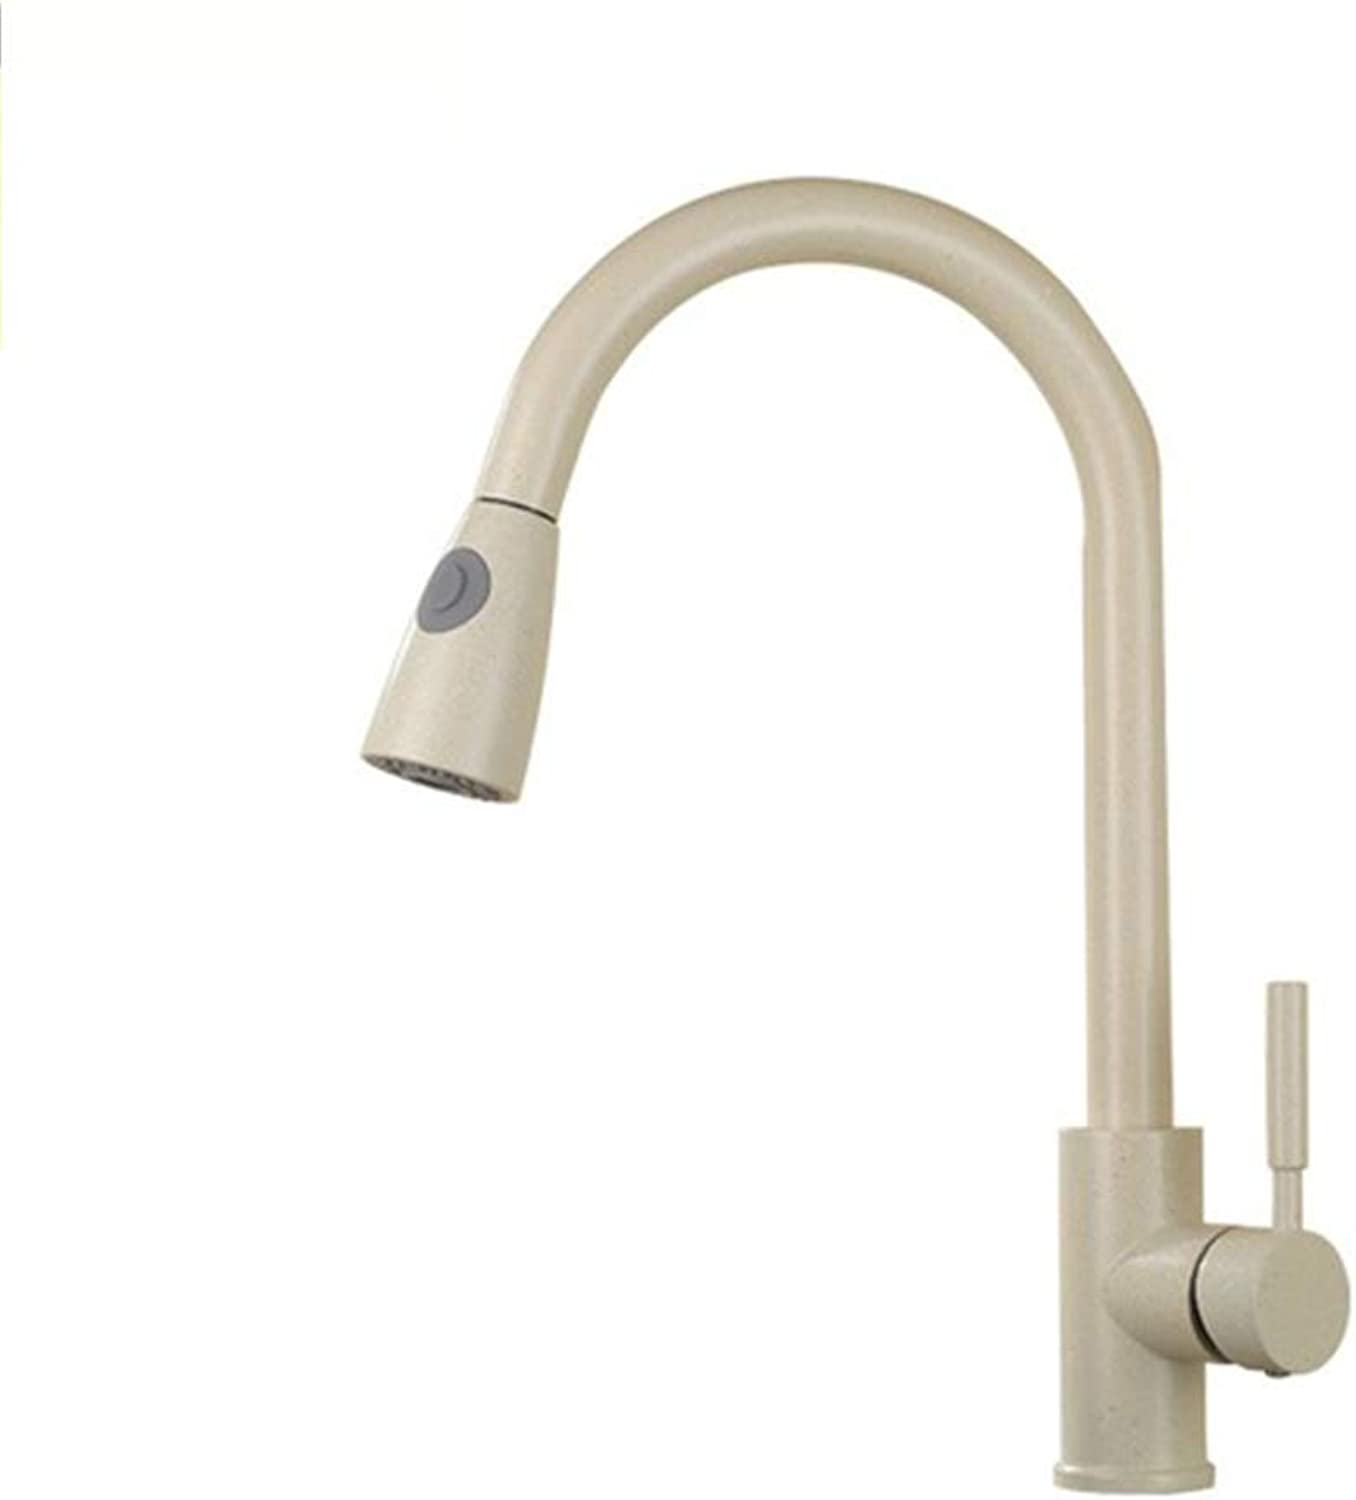 ZMHome Pull Out Stretch Kitchen Mixer Tap 360° Swivel Spout Modern Kitchen Sink Basin Mixer Tap,Oatmeal